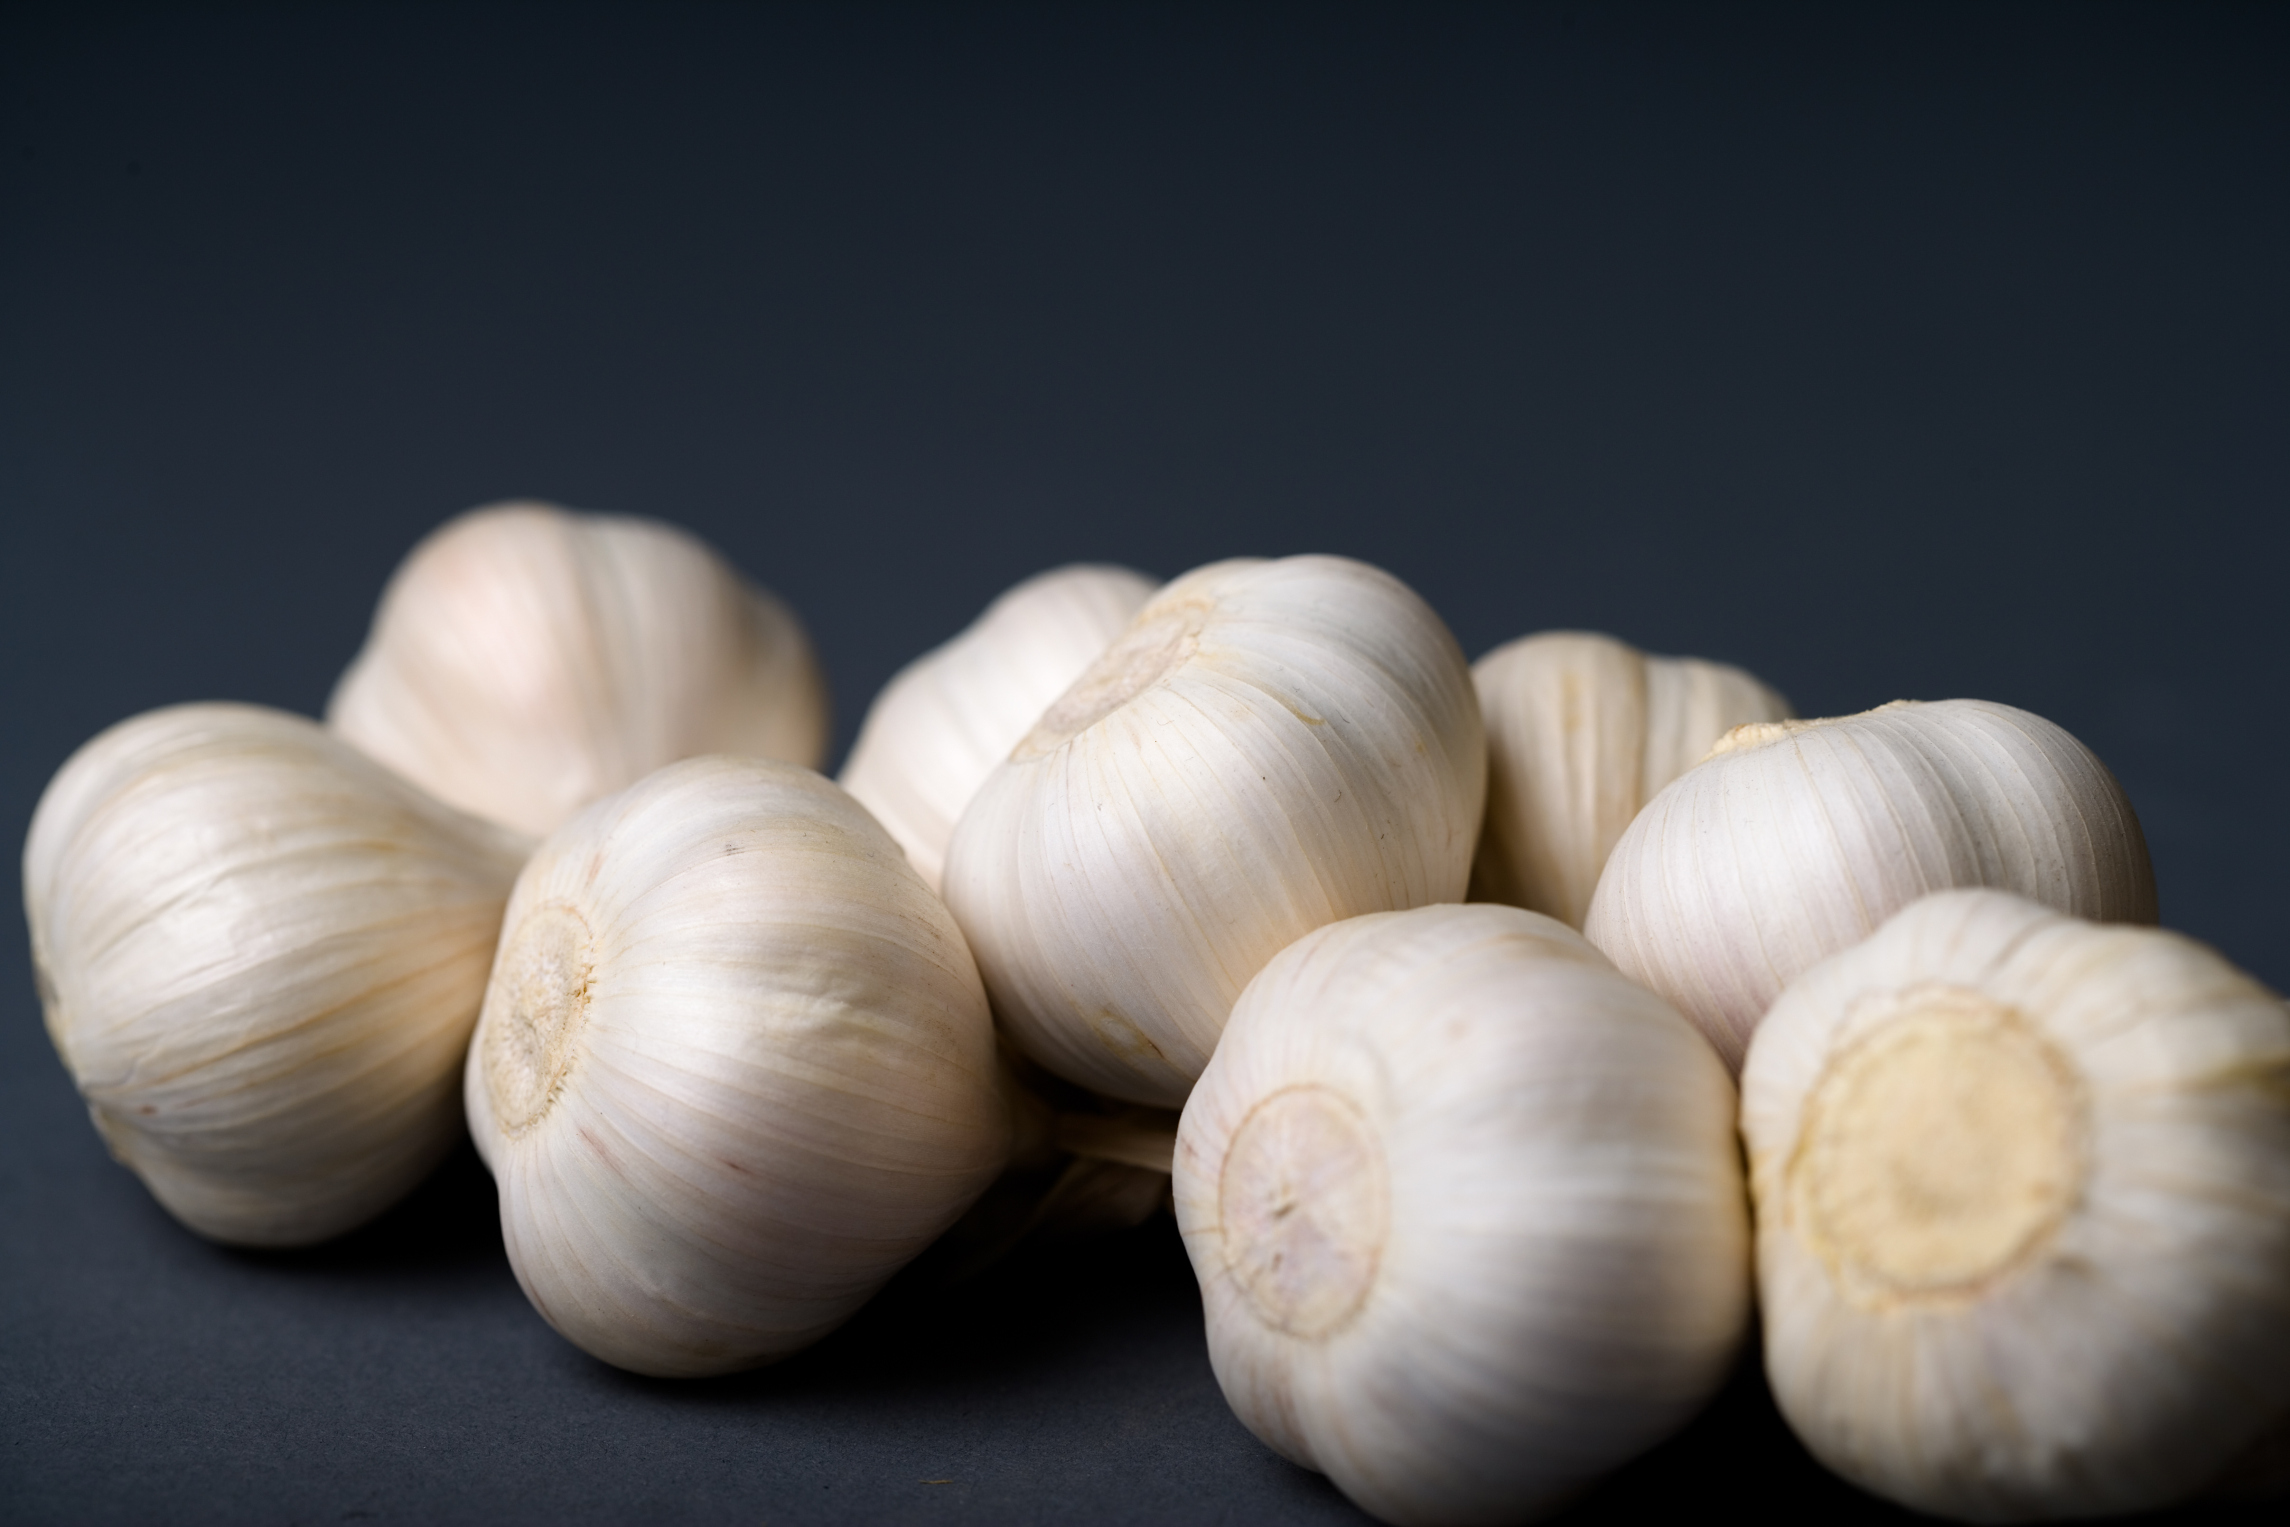 How to Kill Toe Fungus With Garlic | Healthy Living